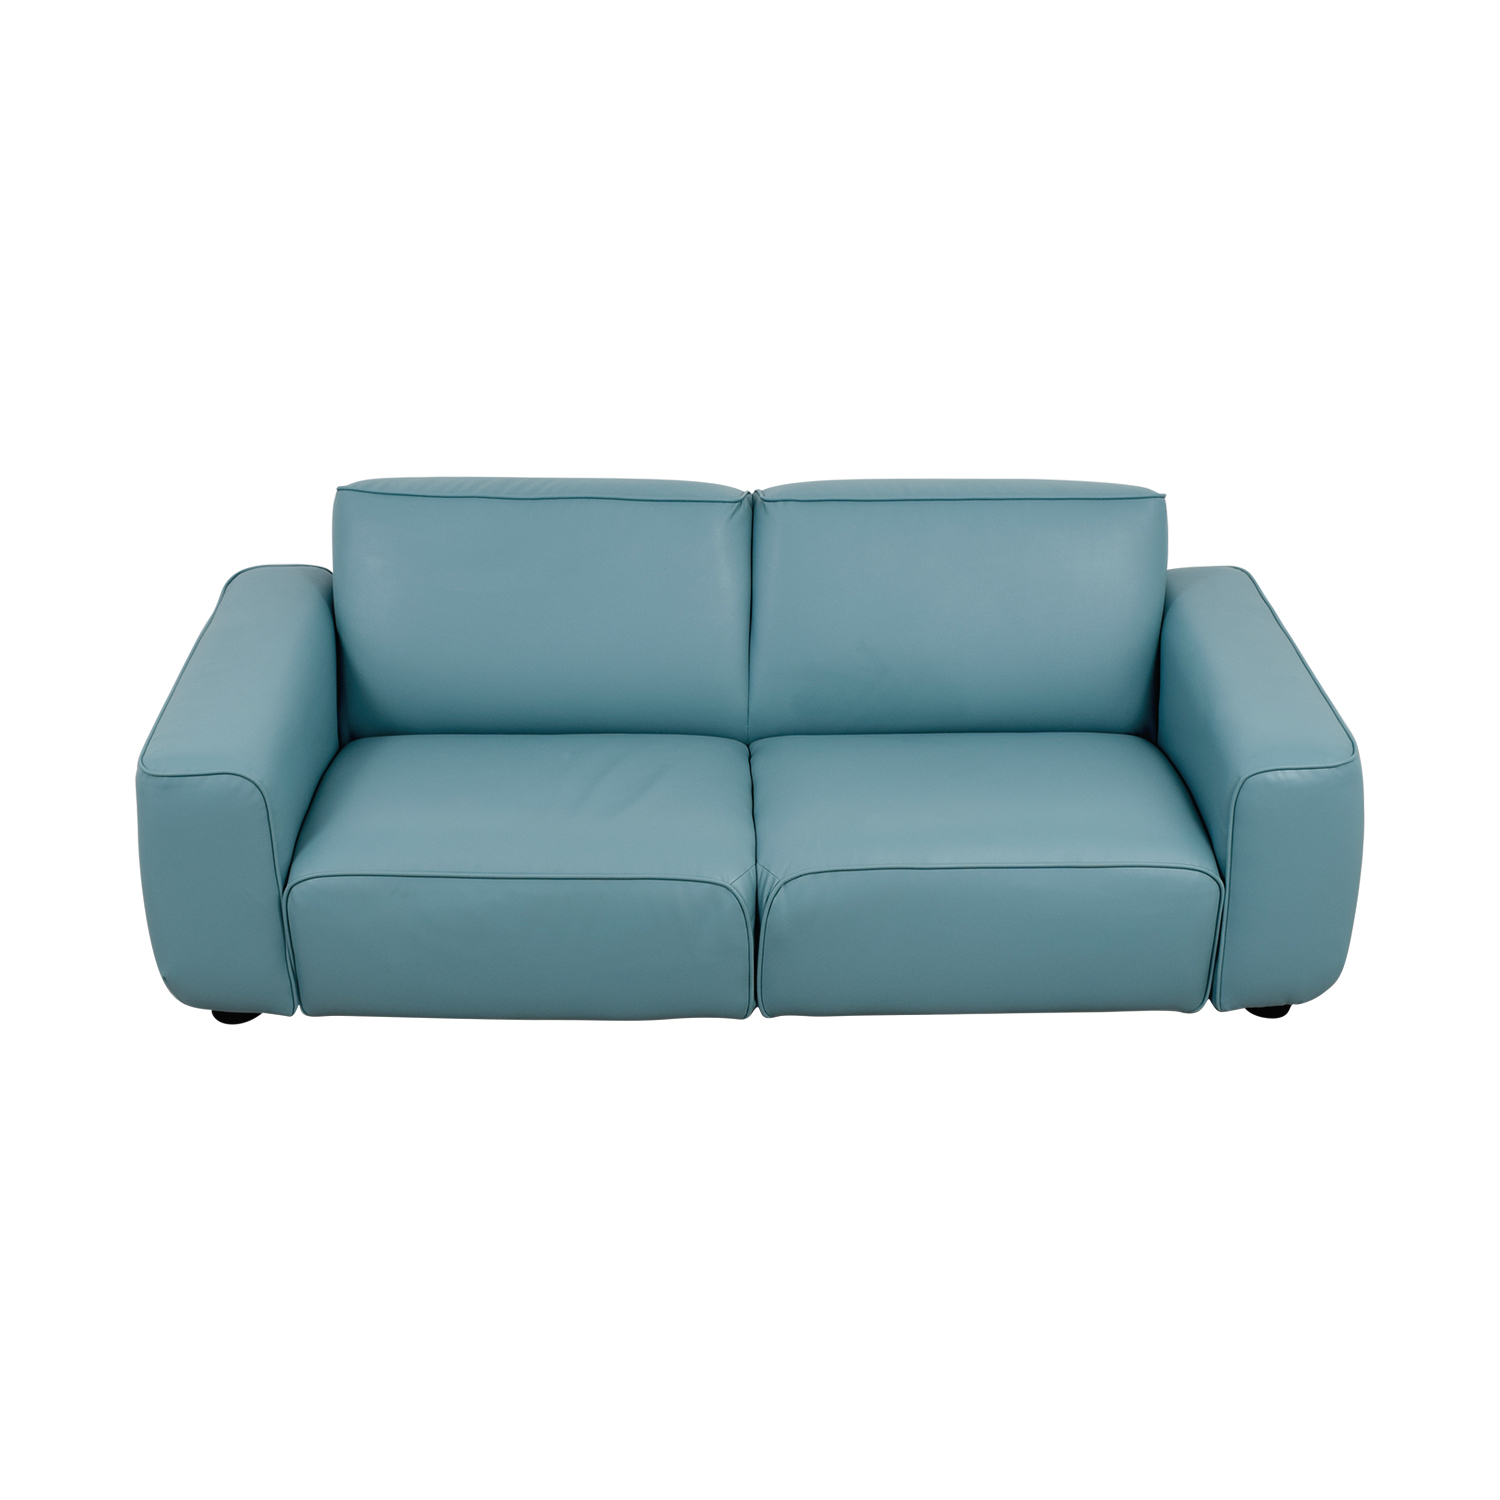 Ikea Coated Baby Blue Loveseat Sofas